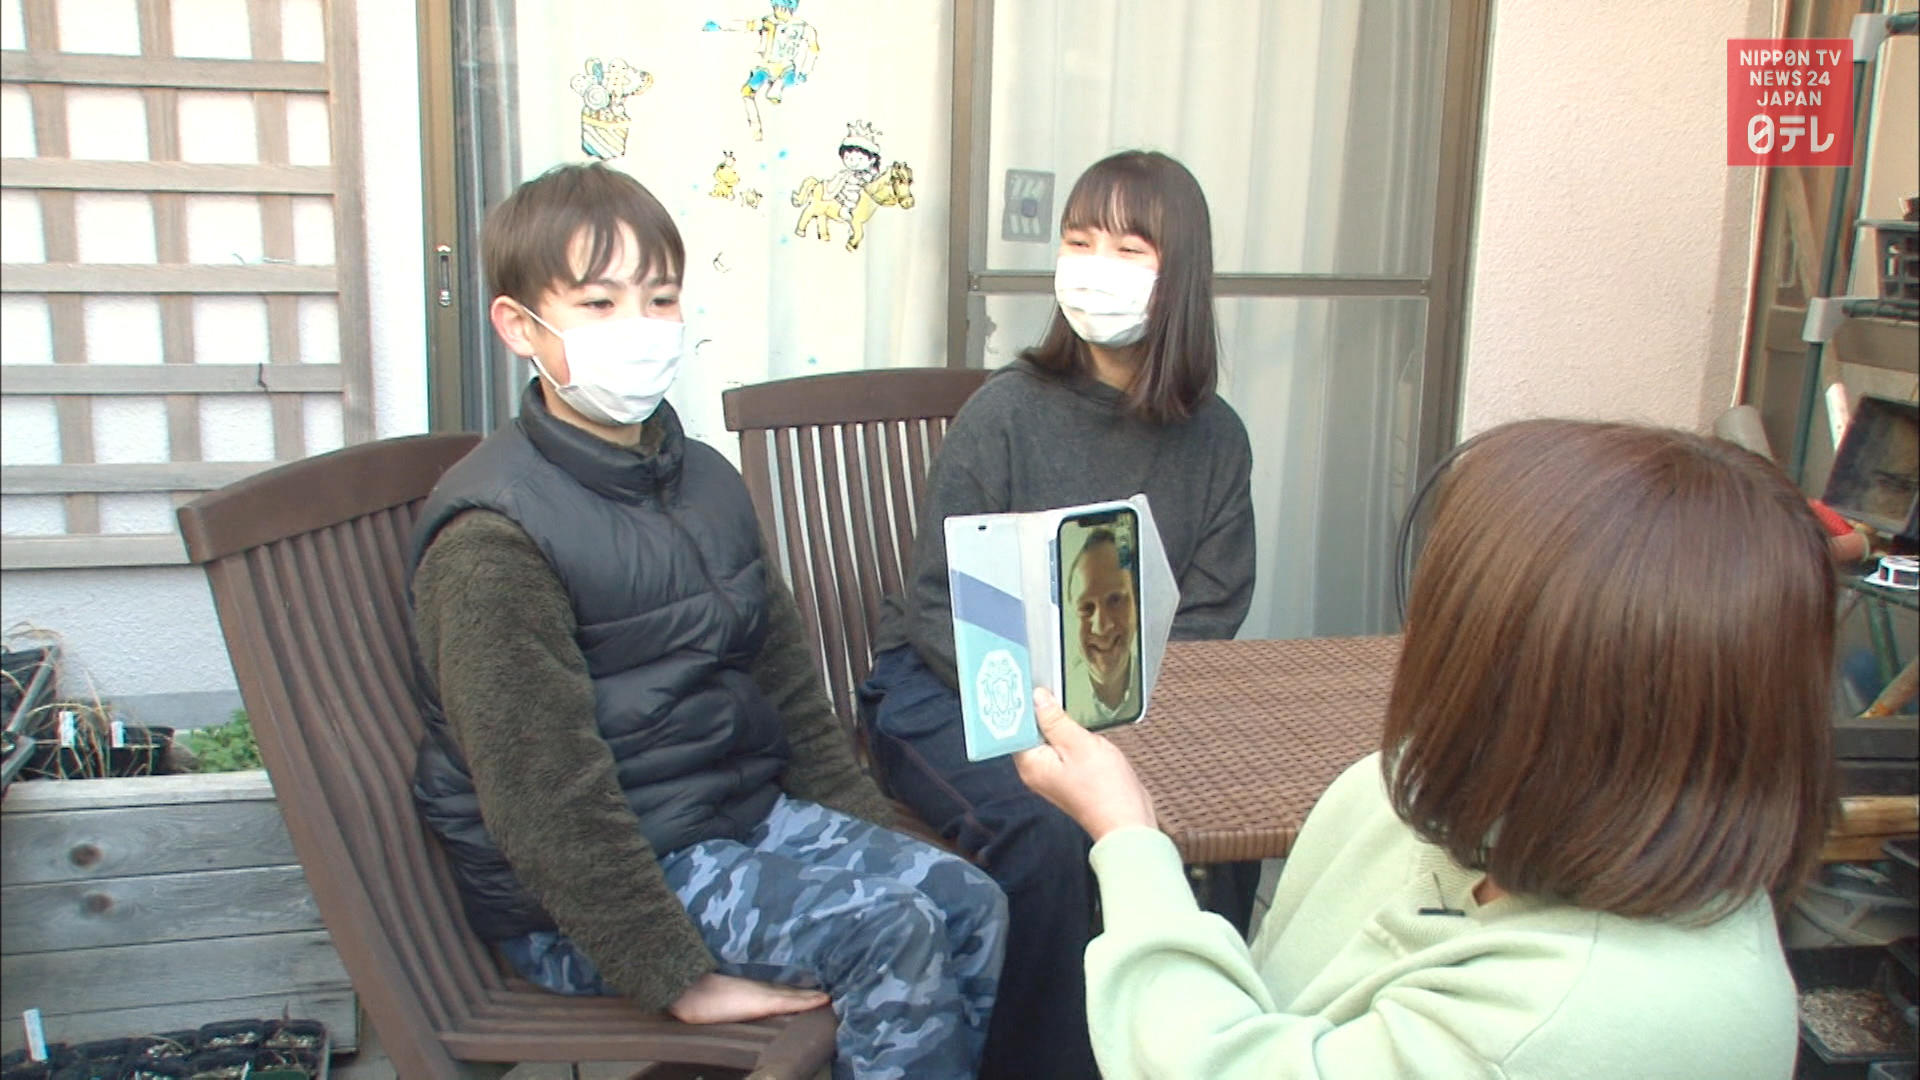 Scottish gardner unable to reunite with family in Japan amid pandemic